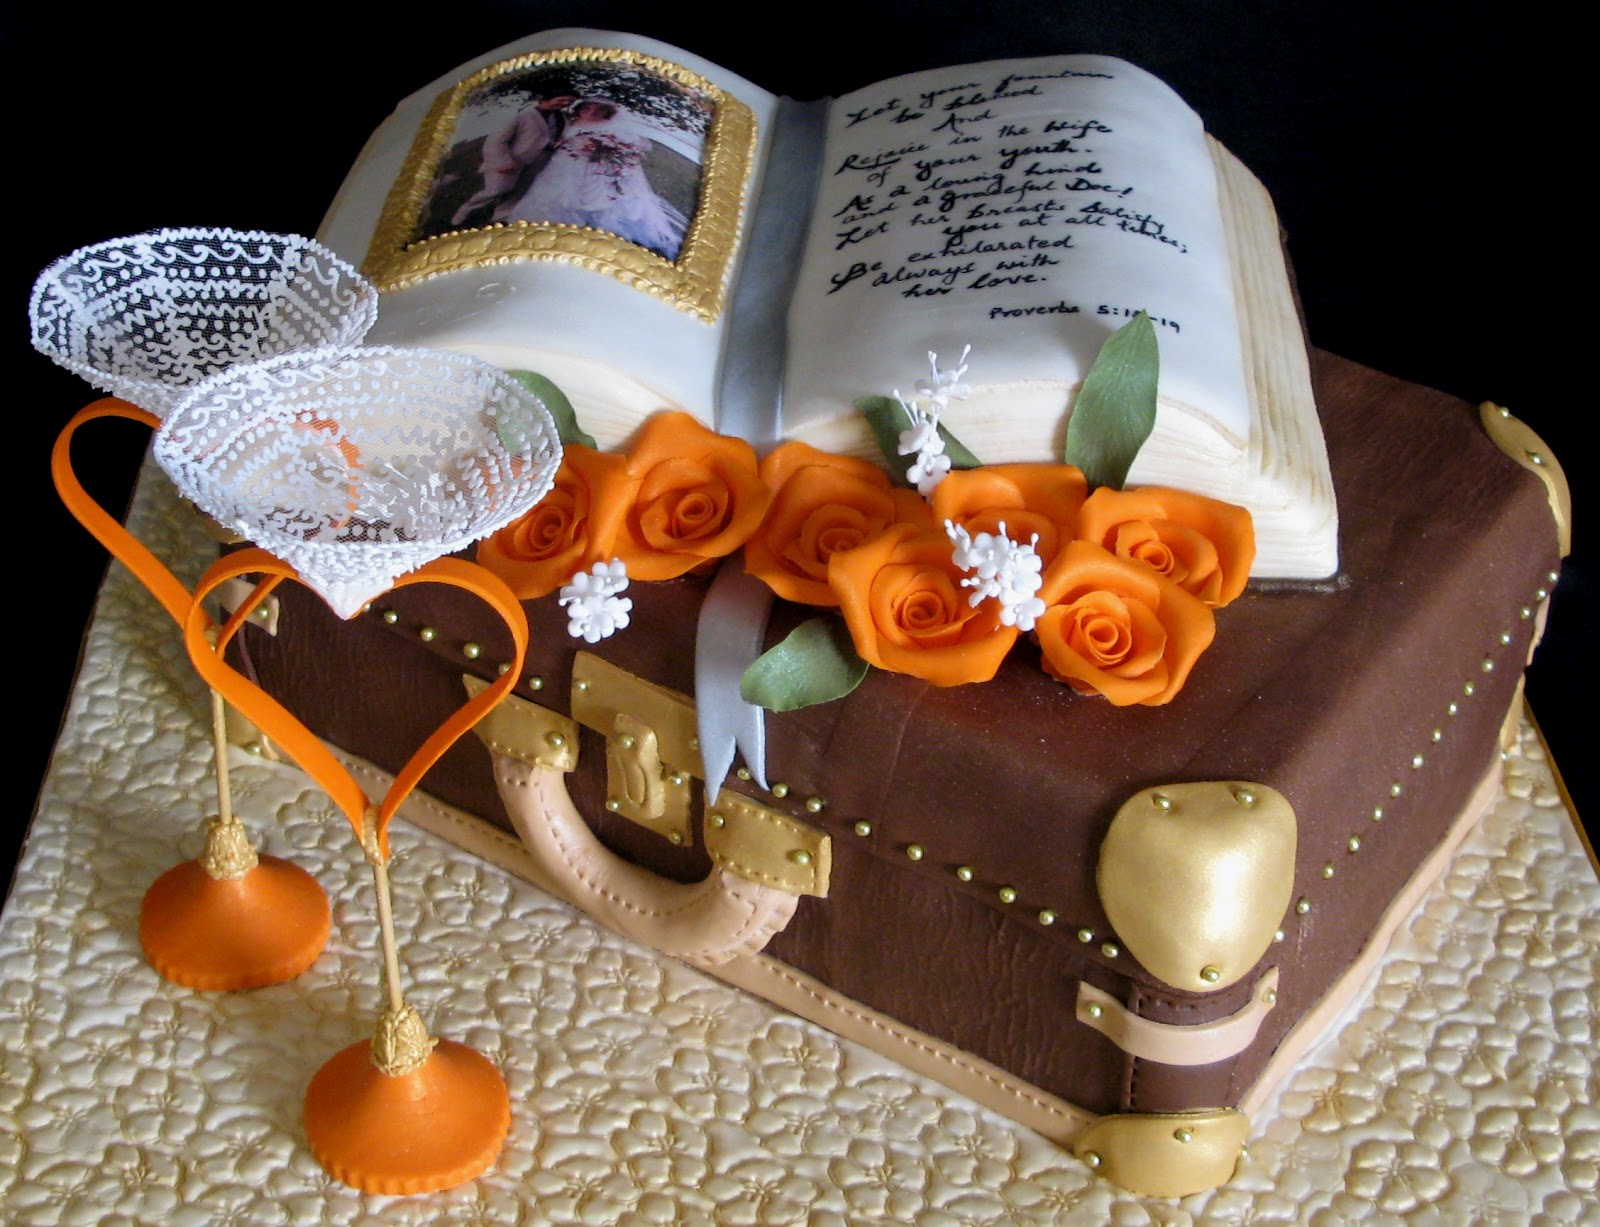 Sugarcraft By Soni Marriage Anniversary Cakeeternal Vows And